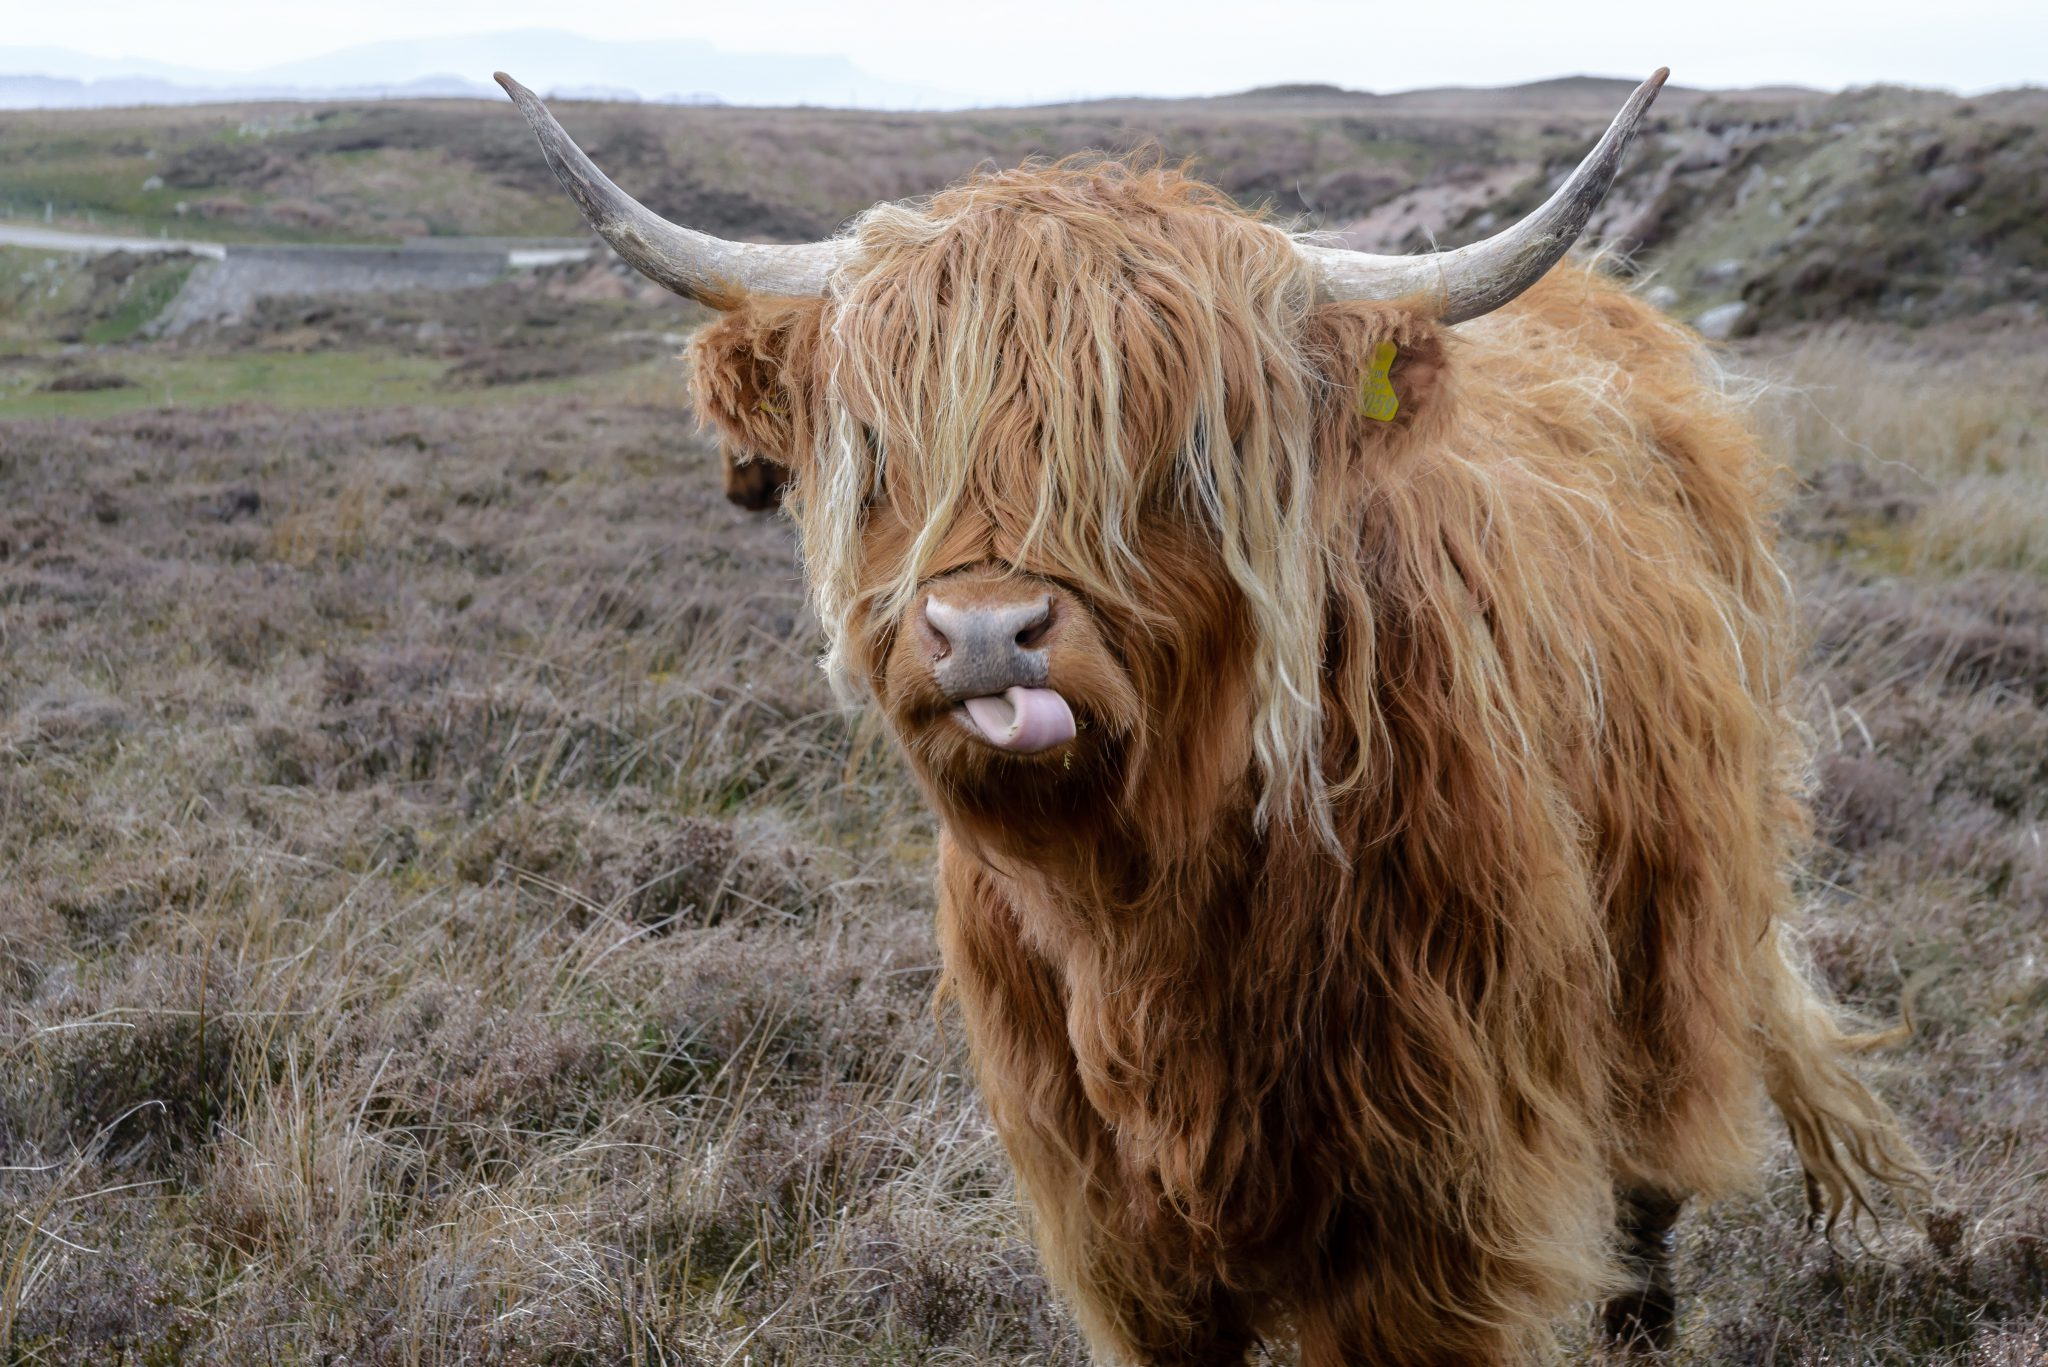 trebandy-farm-herefordshire-highland-cattle-grassfed-beef-wildreared-ethical-livestock-sustainable-farming-1